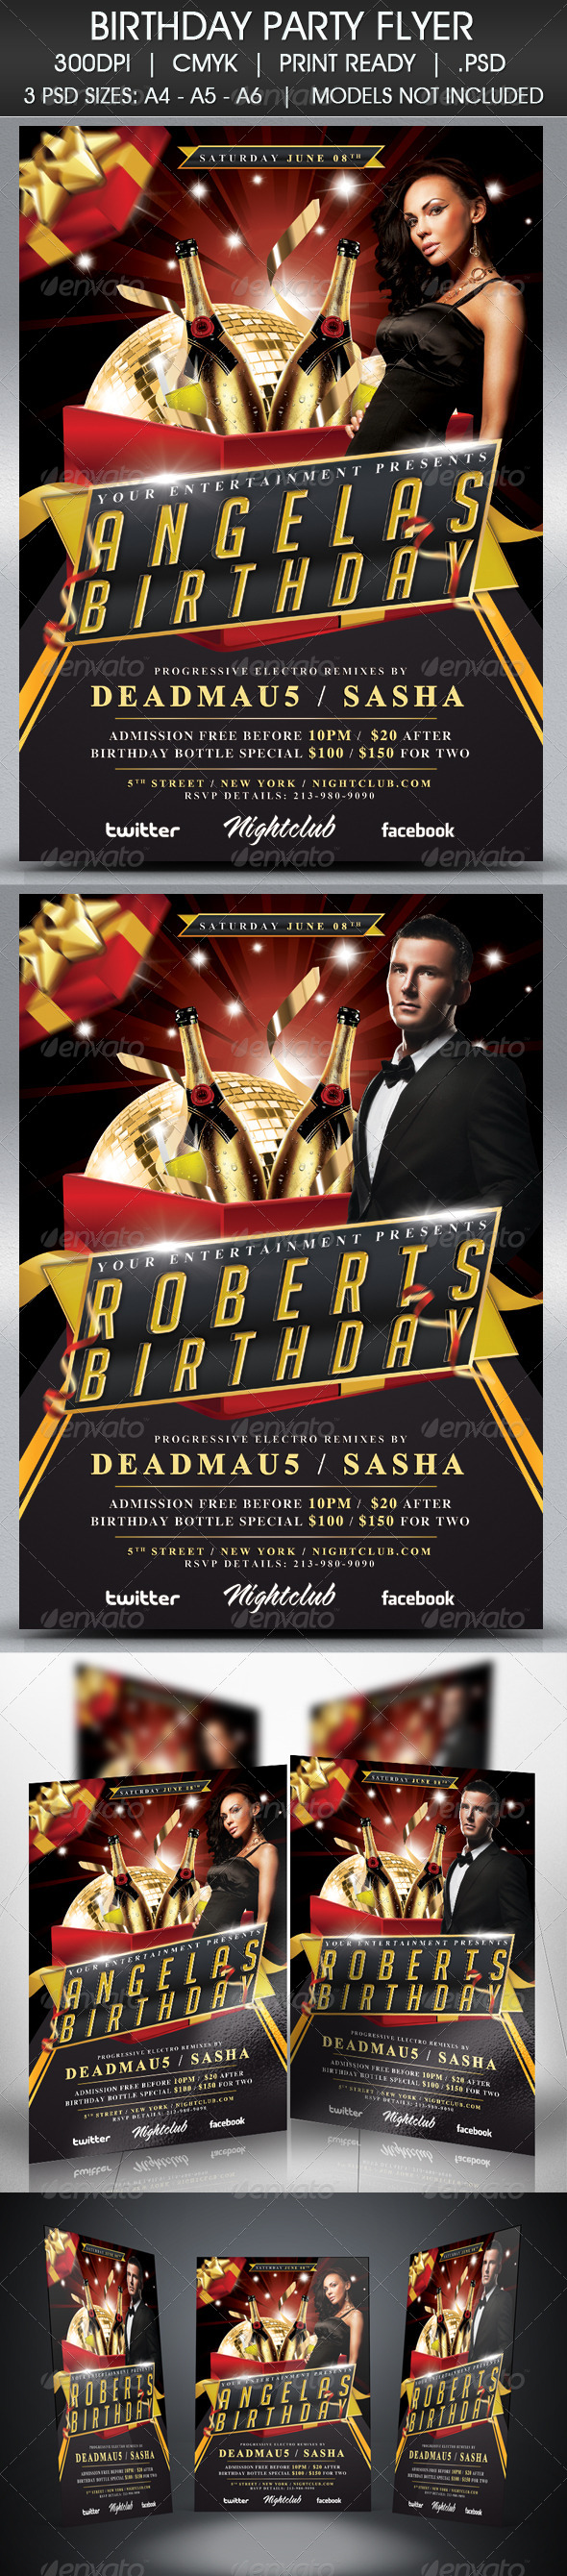 Birthday Party Flyer - Events Flyers